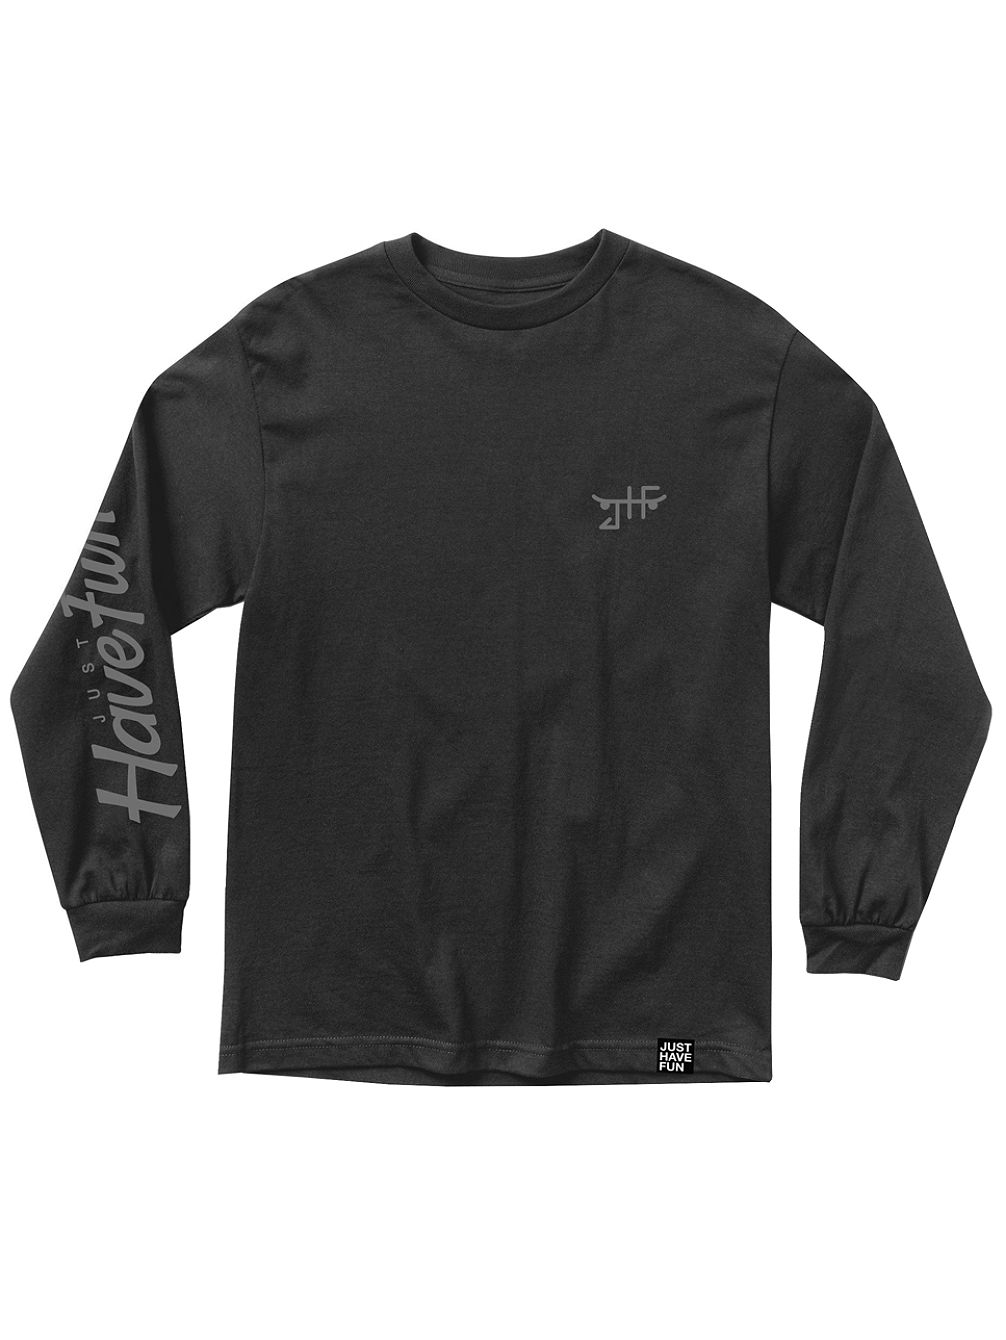 Teamed Up Long Sleeve T-Shirt